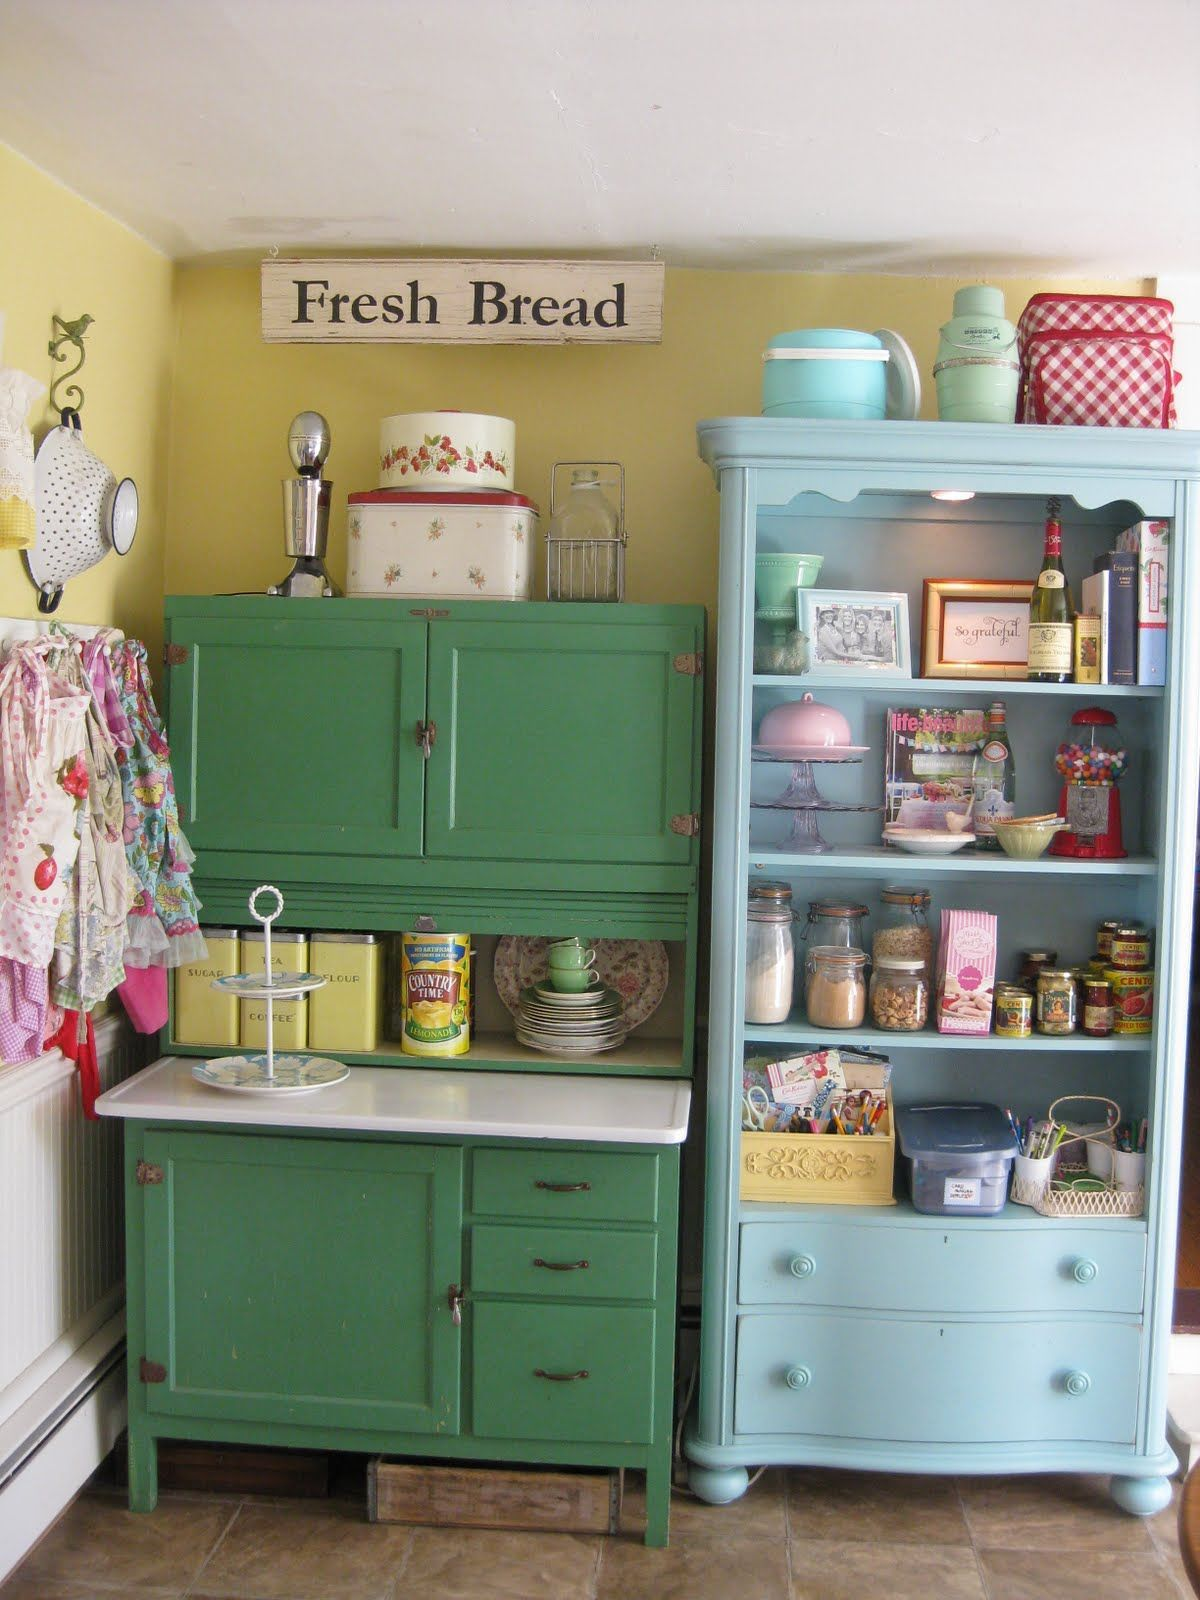 17 unique kitchen decorating ideas get inspired with these great looks vintage kitchen decor on kitchen ideas unique id=79681